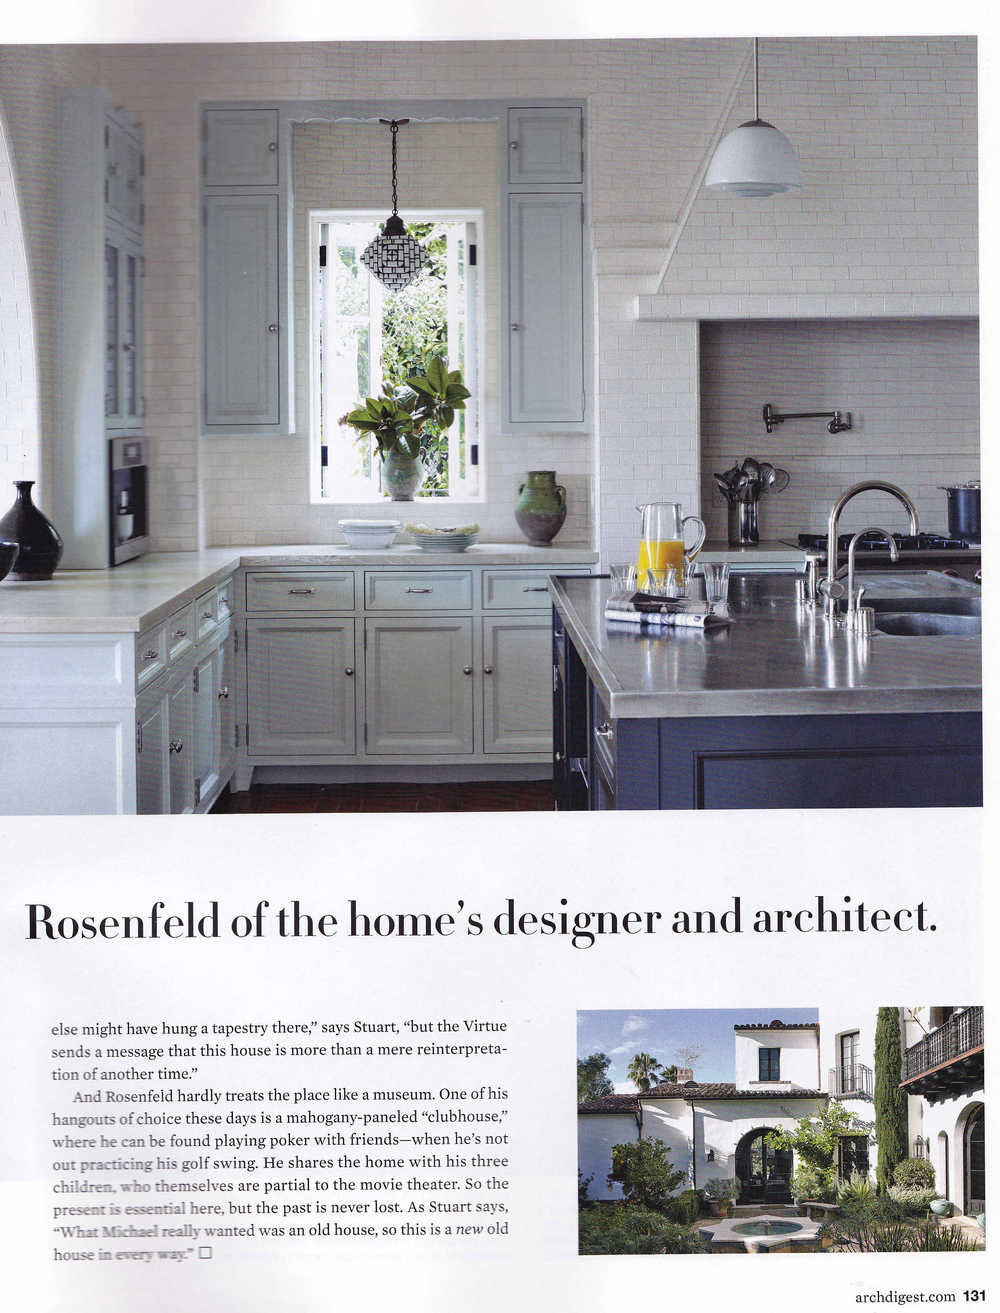 Arch Digest Article 20.jpg